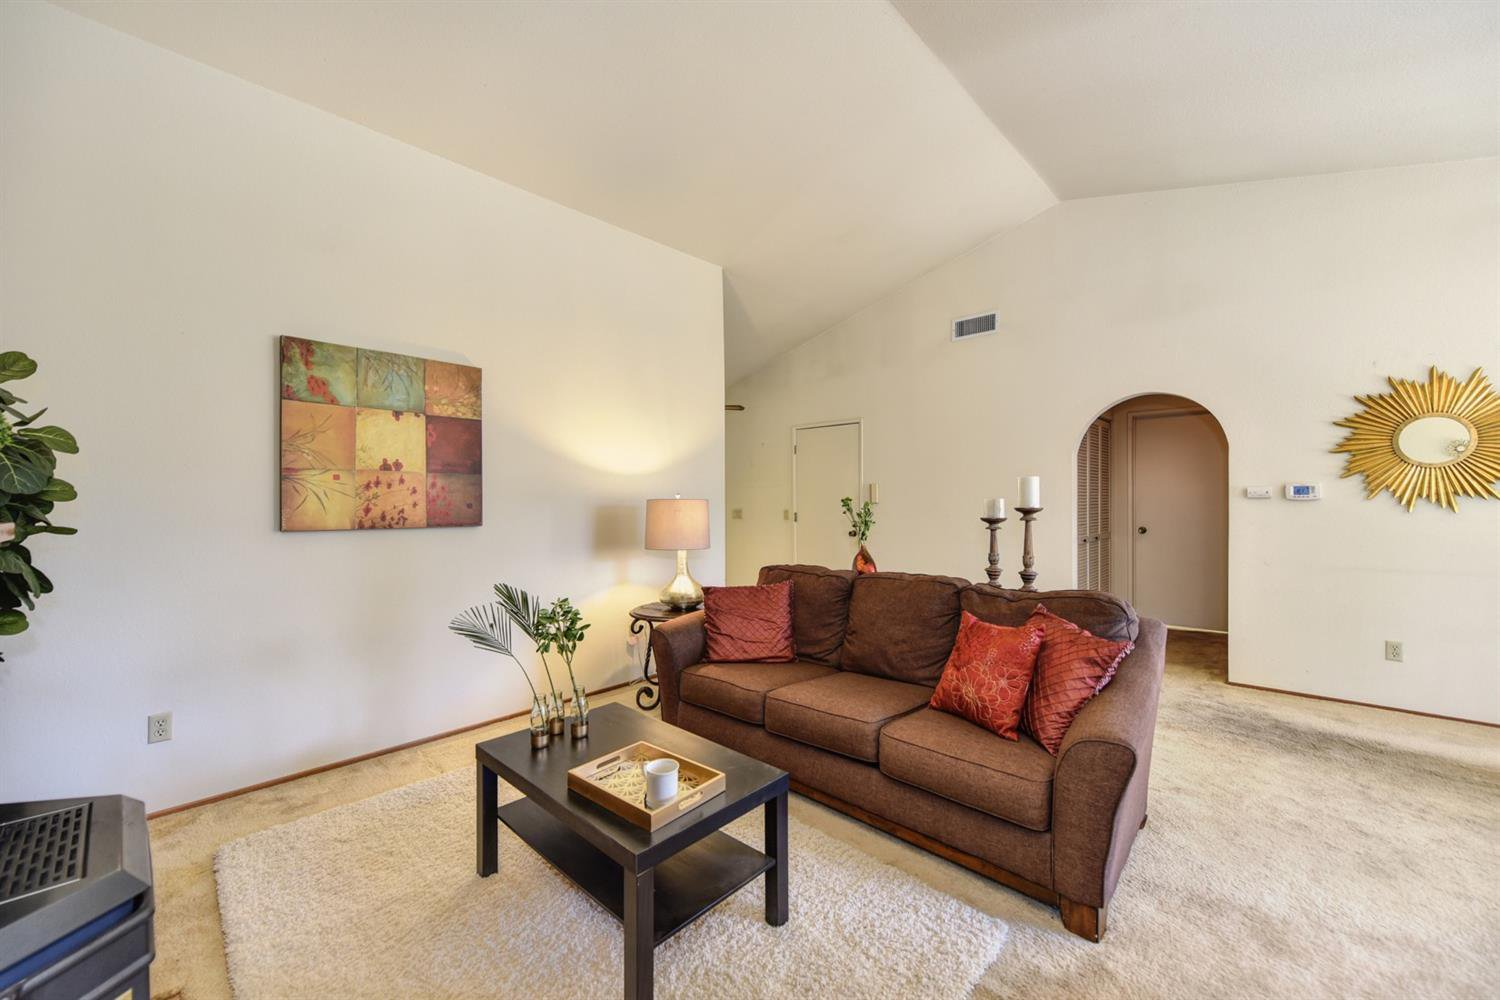 Realtor in Citrus Heights California. Homes for sale in Citrus Heights.